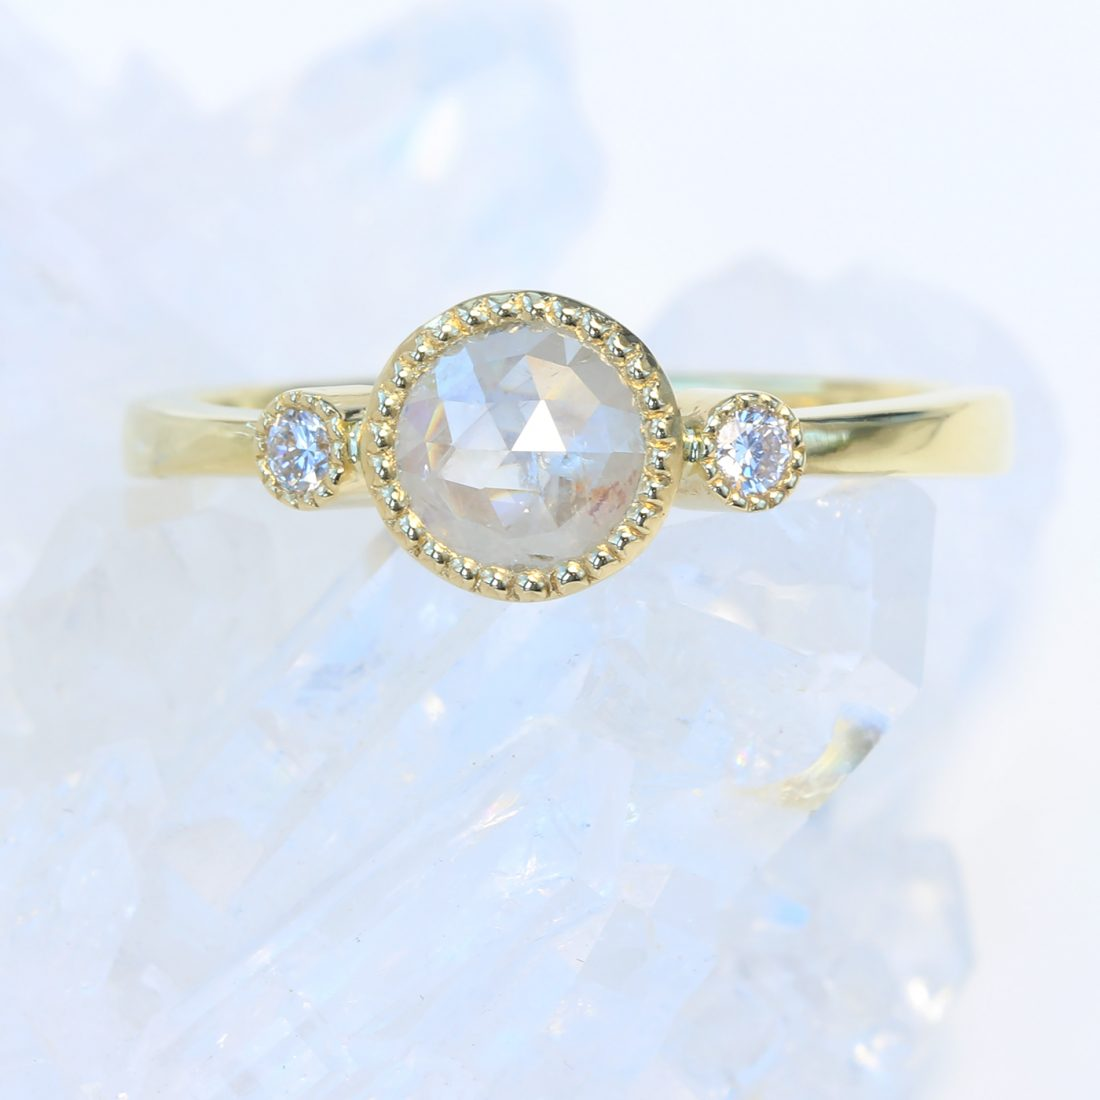 icy diamond trilogy ring 18ct gold